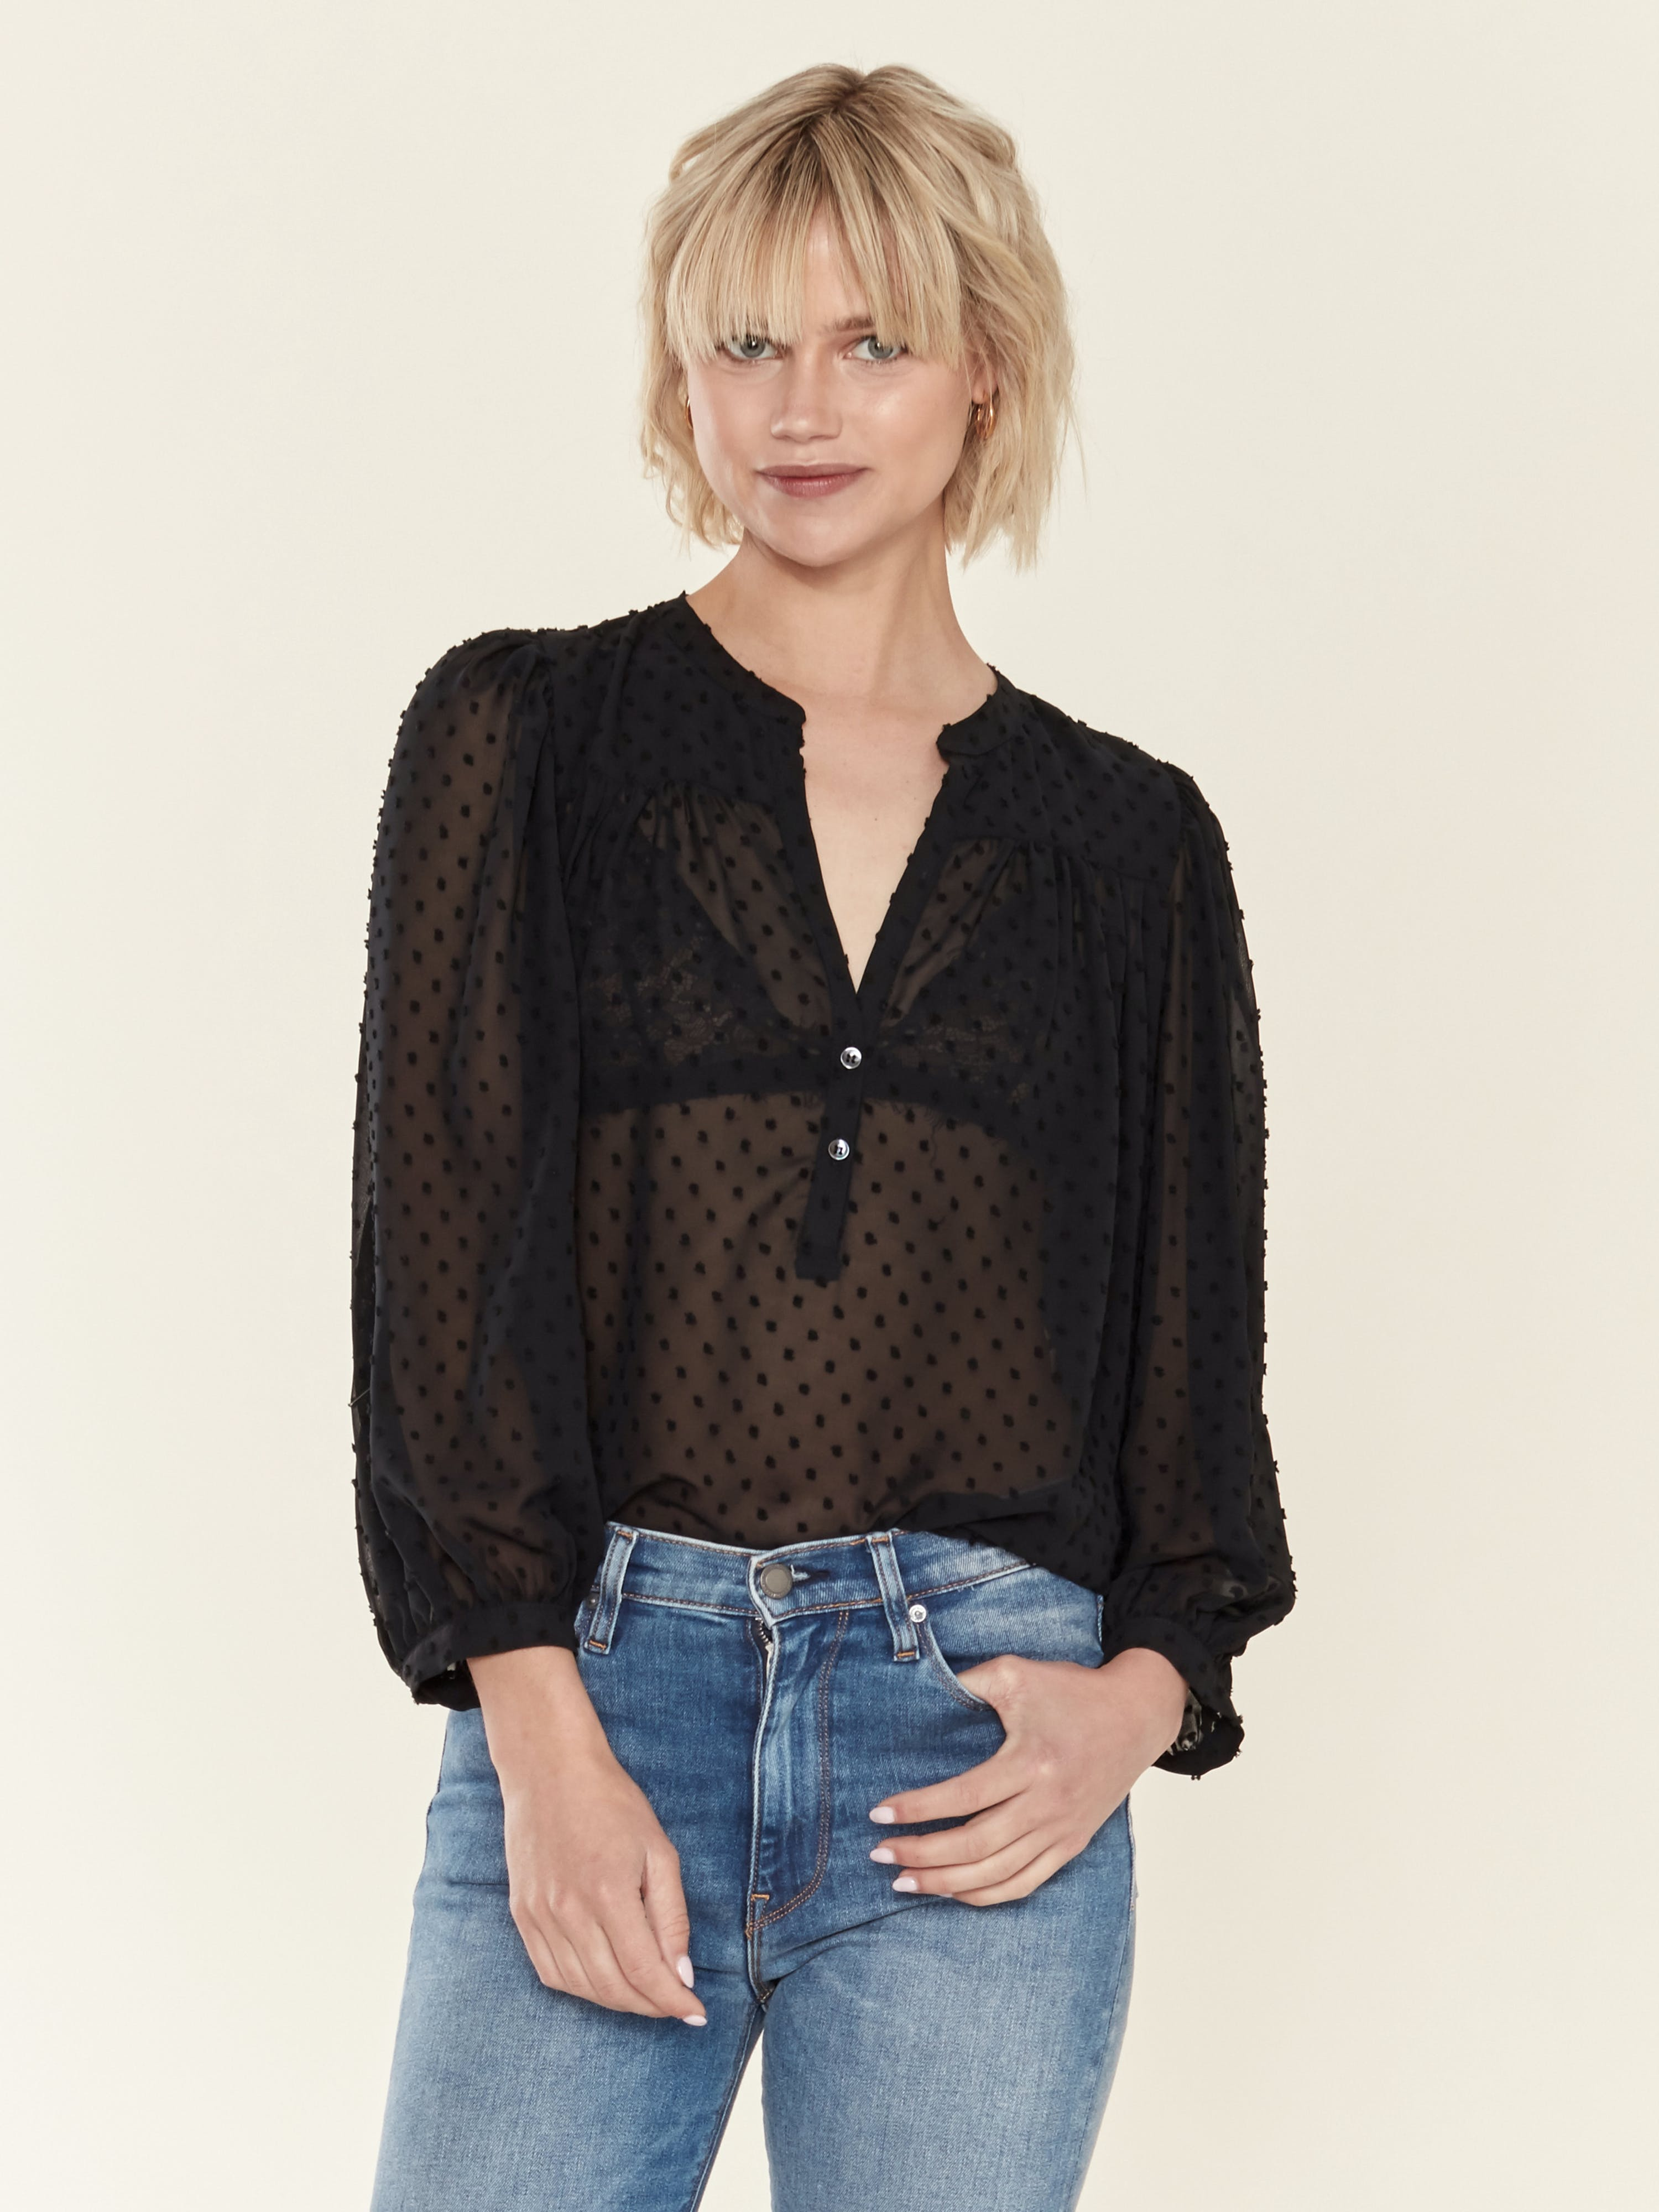 Icons Objects Of Devotion Modern Poet Top - S - Also In: M In Black